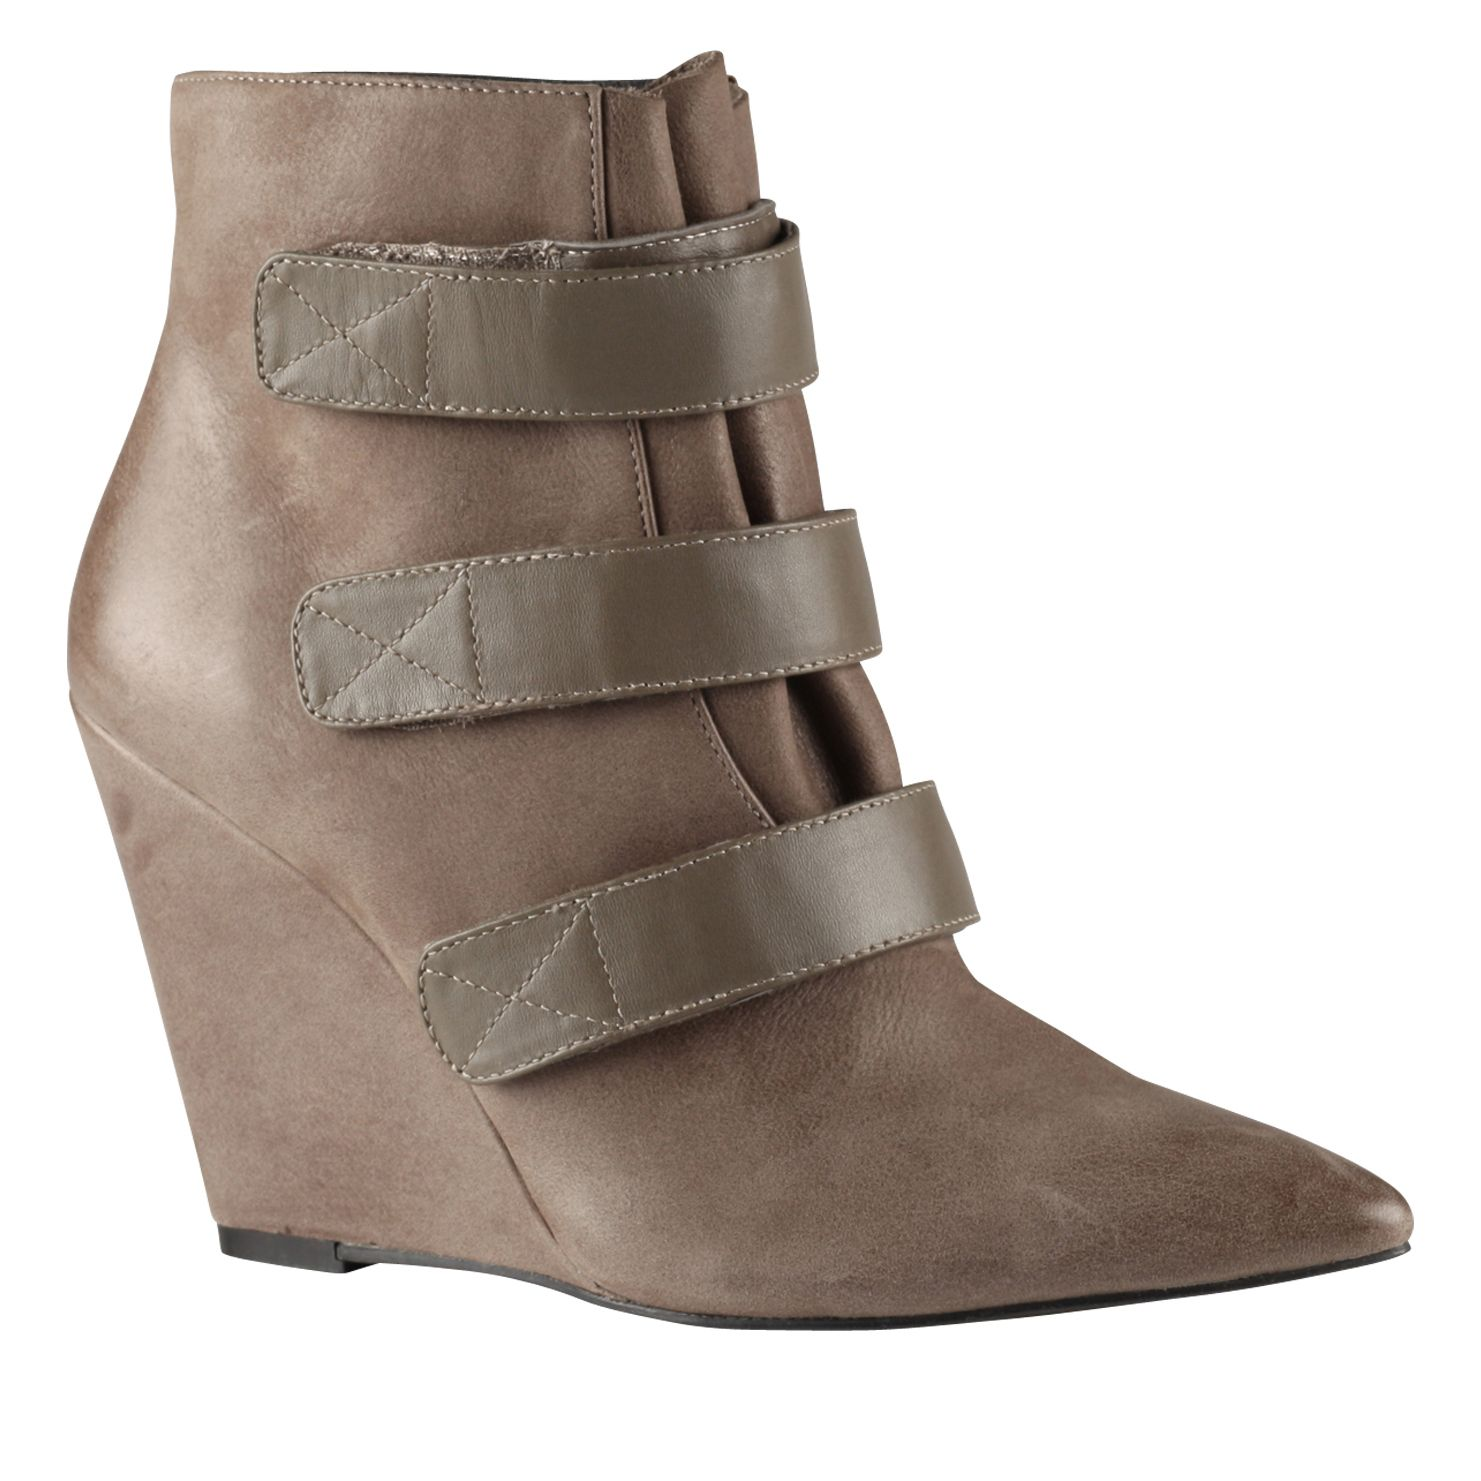 Jacelyn pointed toe wedge boots